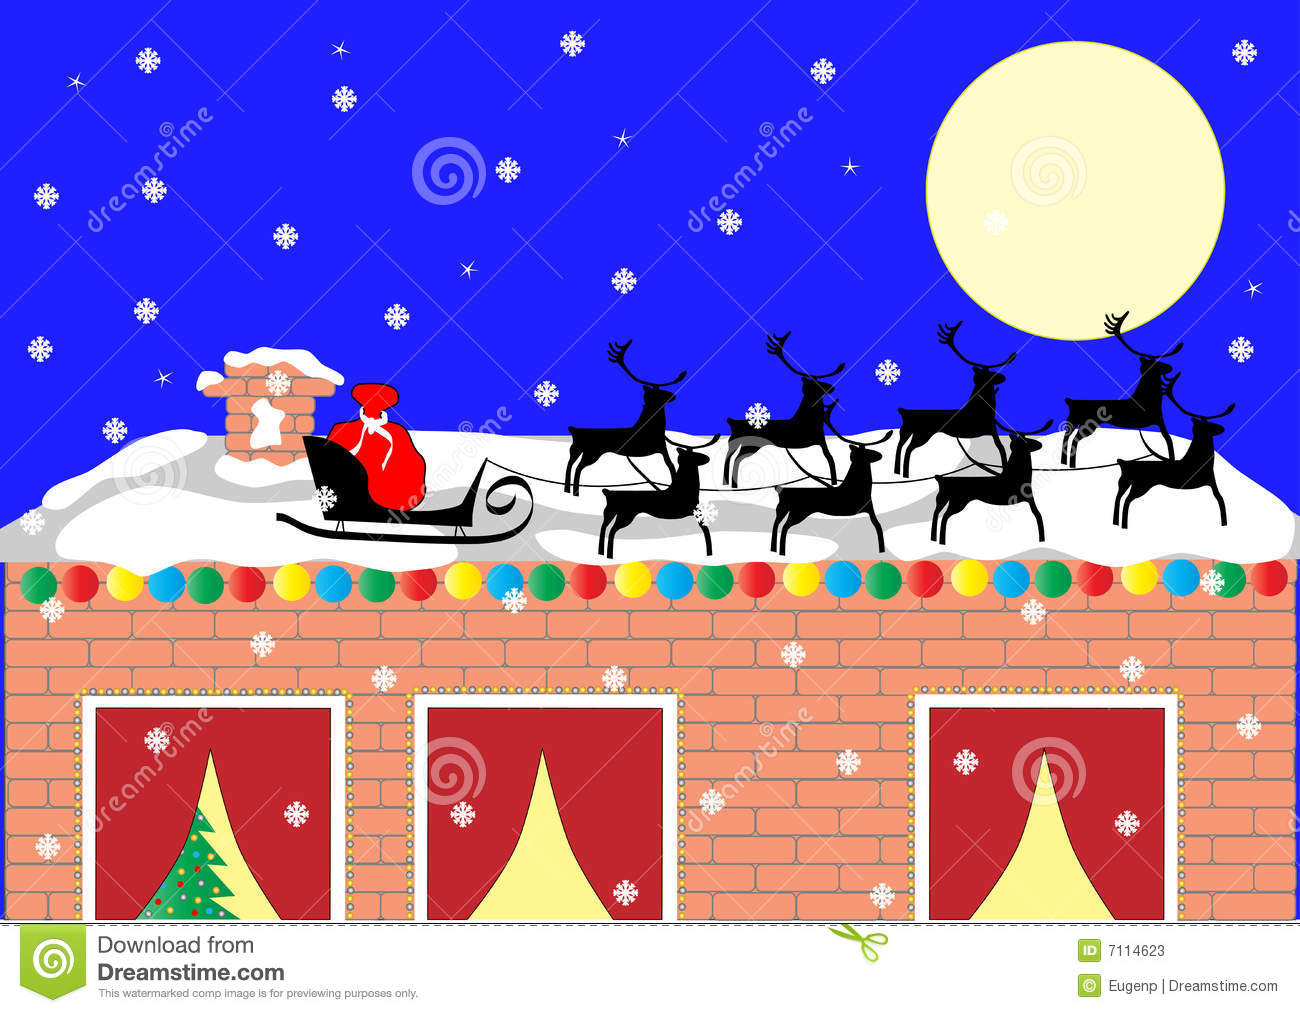 Santa Sleigh On The Roof Stock Vector Illustration Of